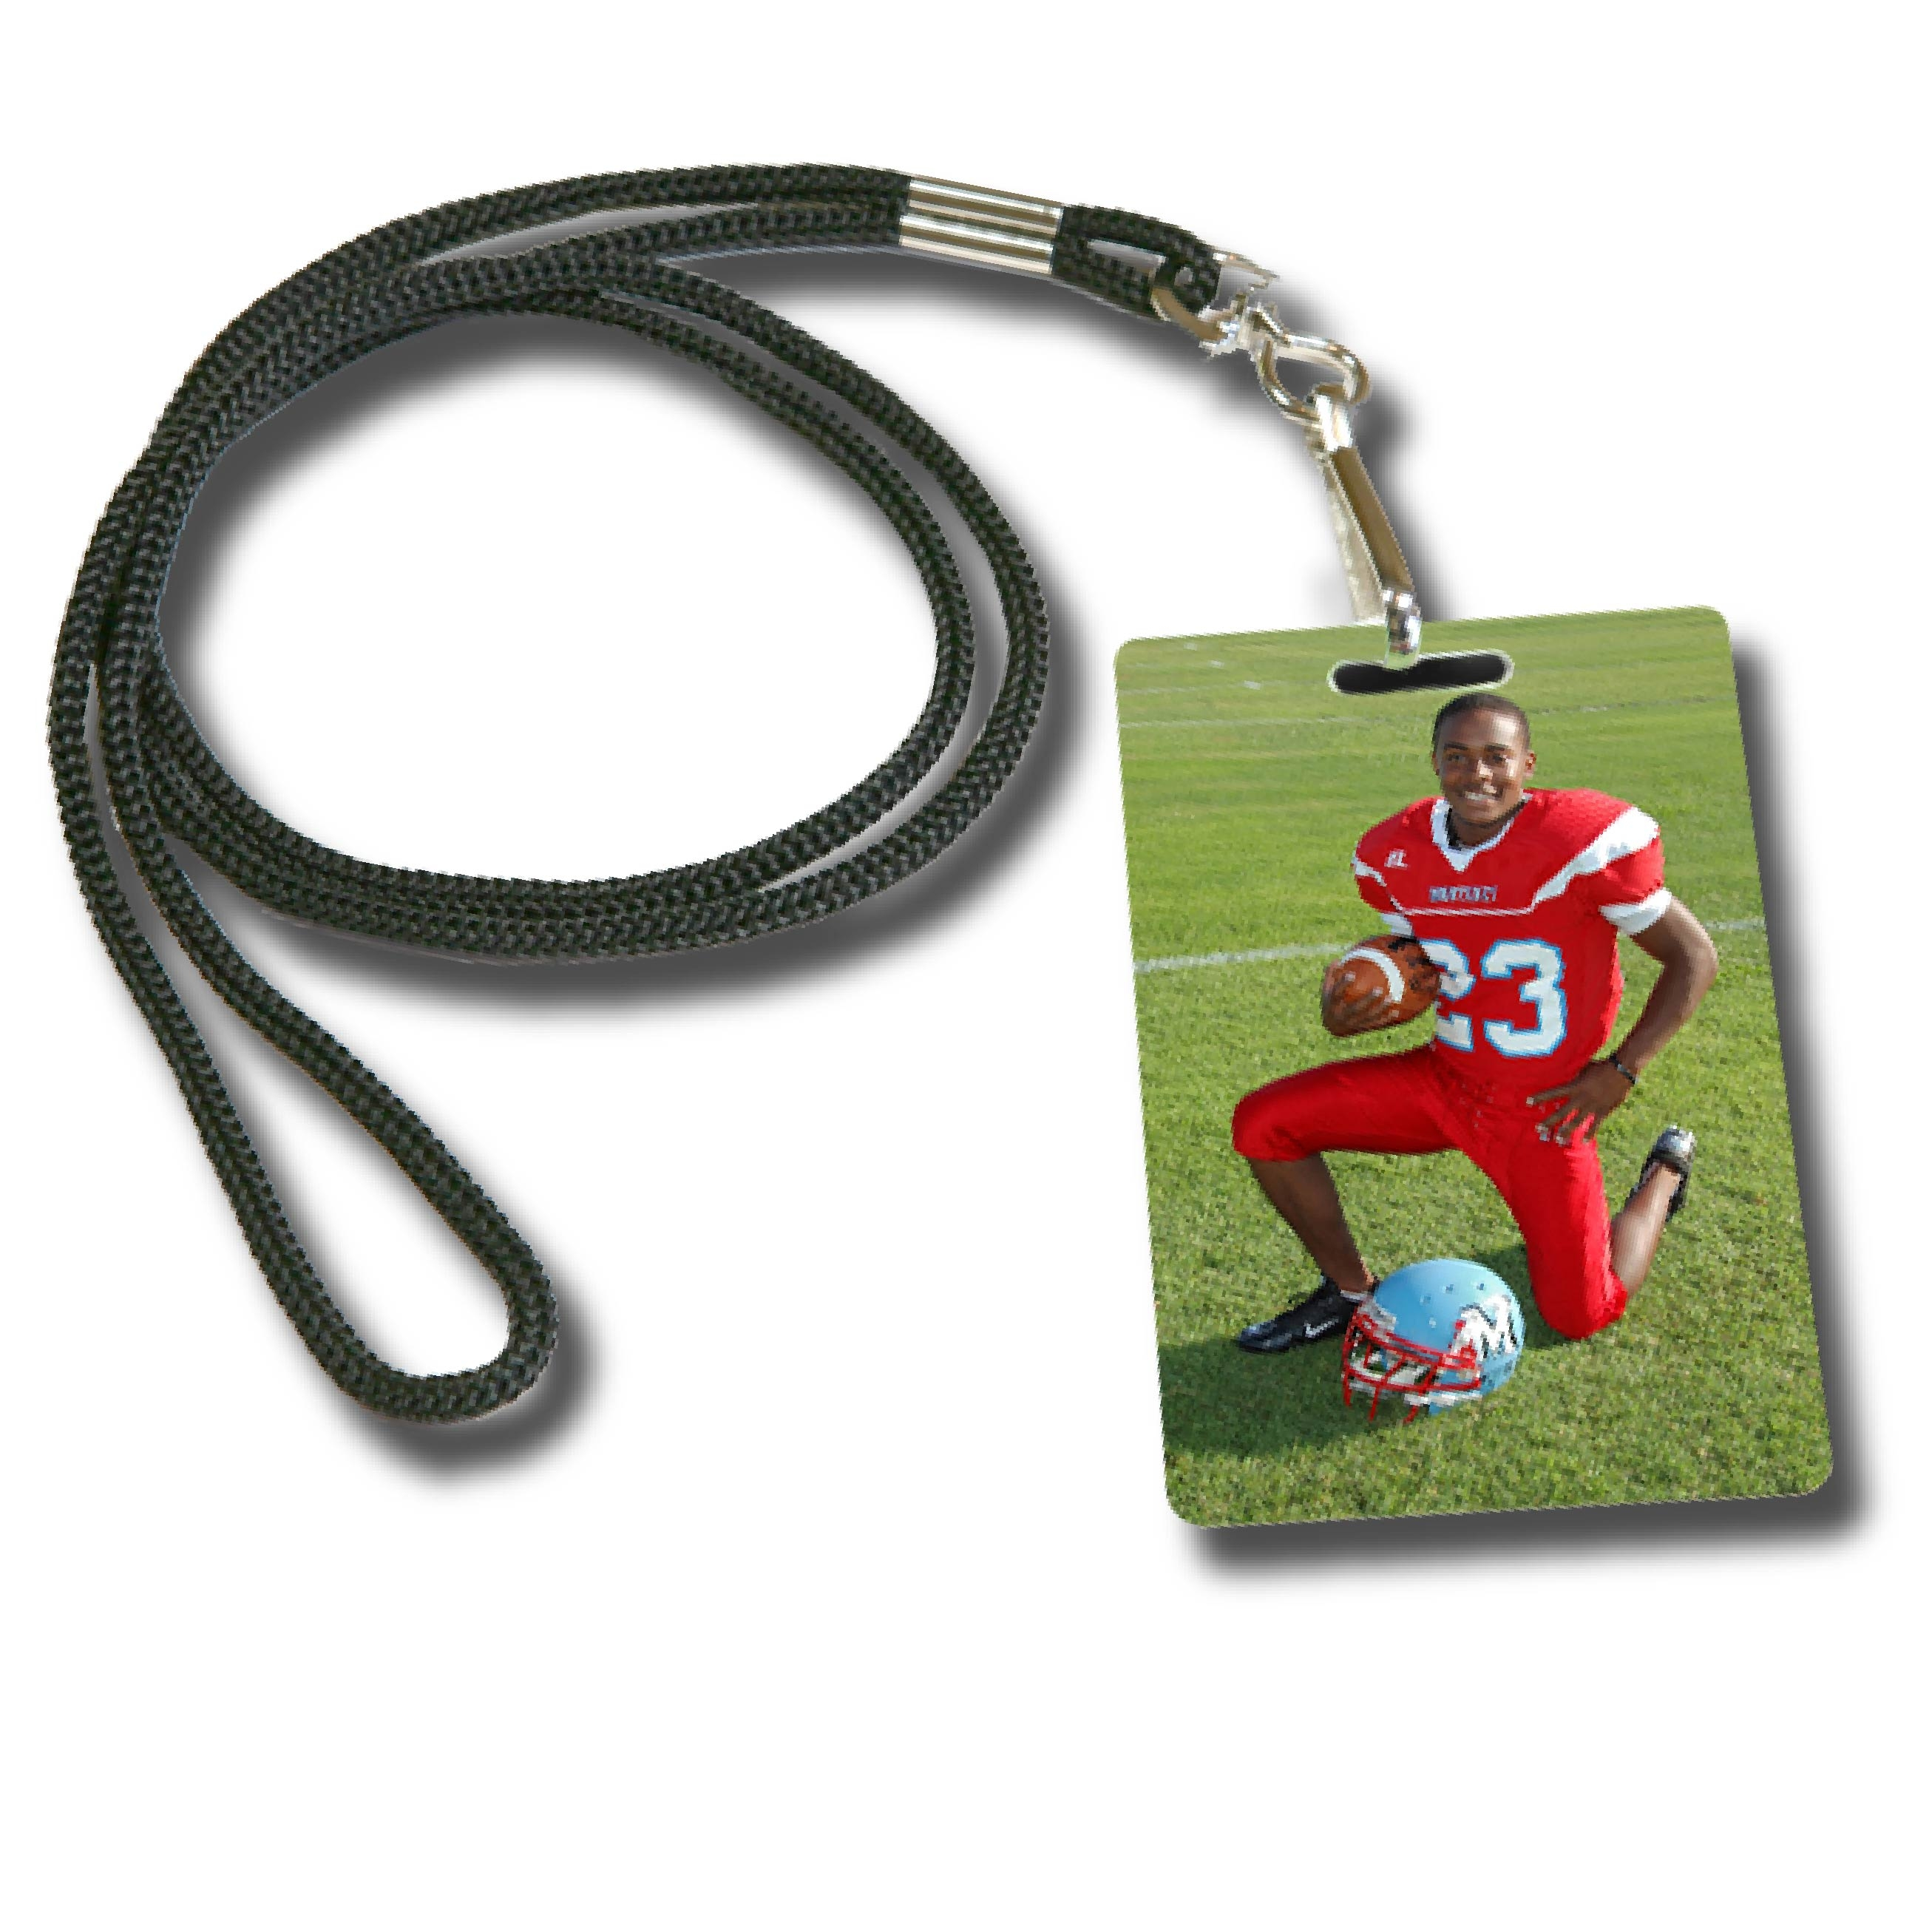 Football Player in Red Uniform Printed on Lanyard Tags